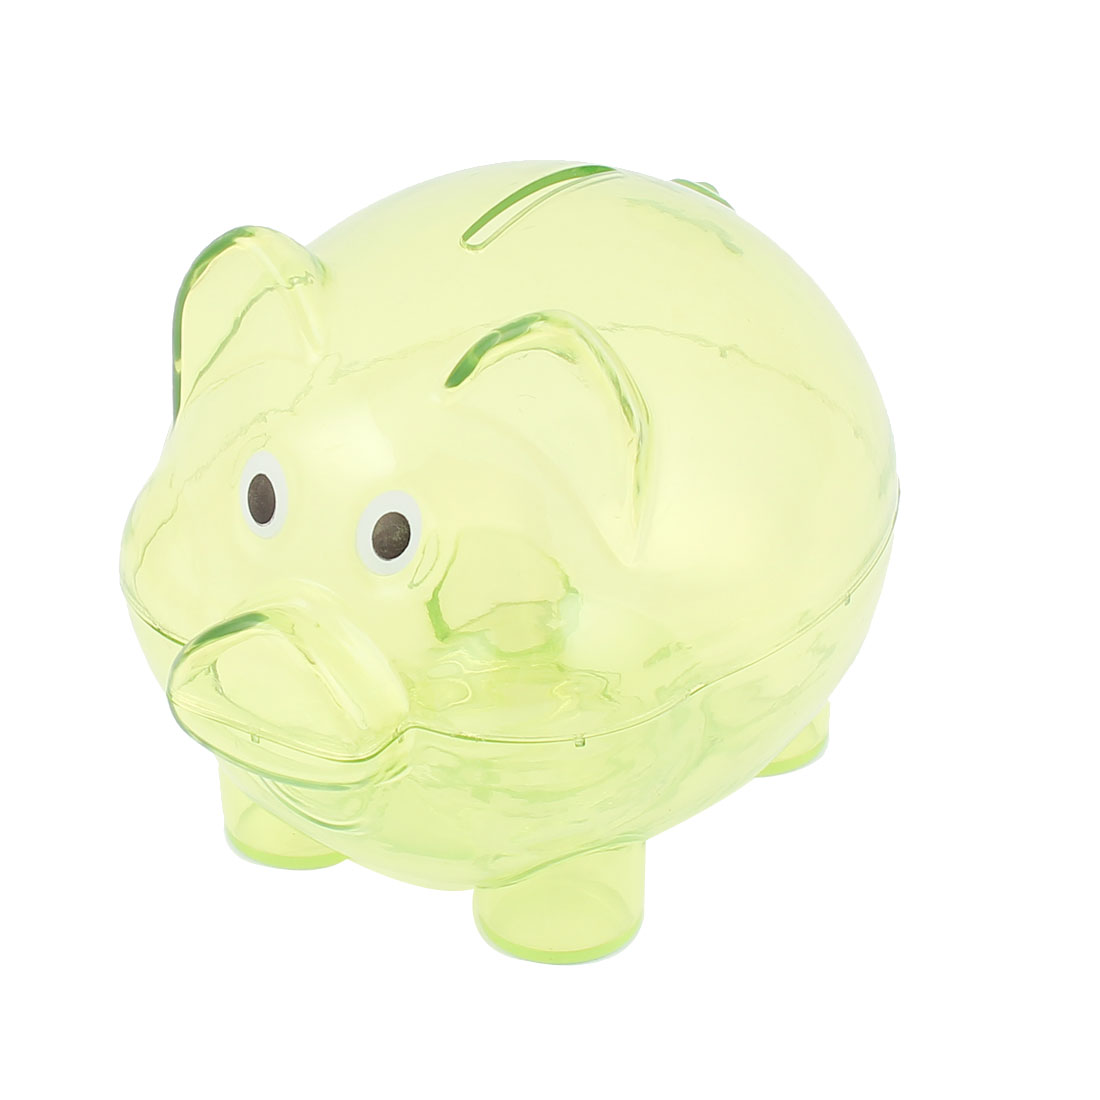 Plastic Pig Shaped Money Cash Penny Saving Pot Coins Piggy Bank Clear Green